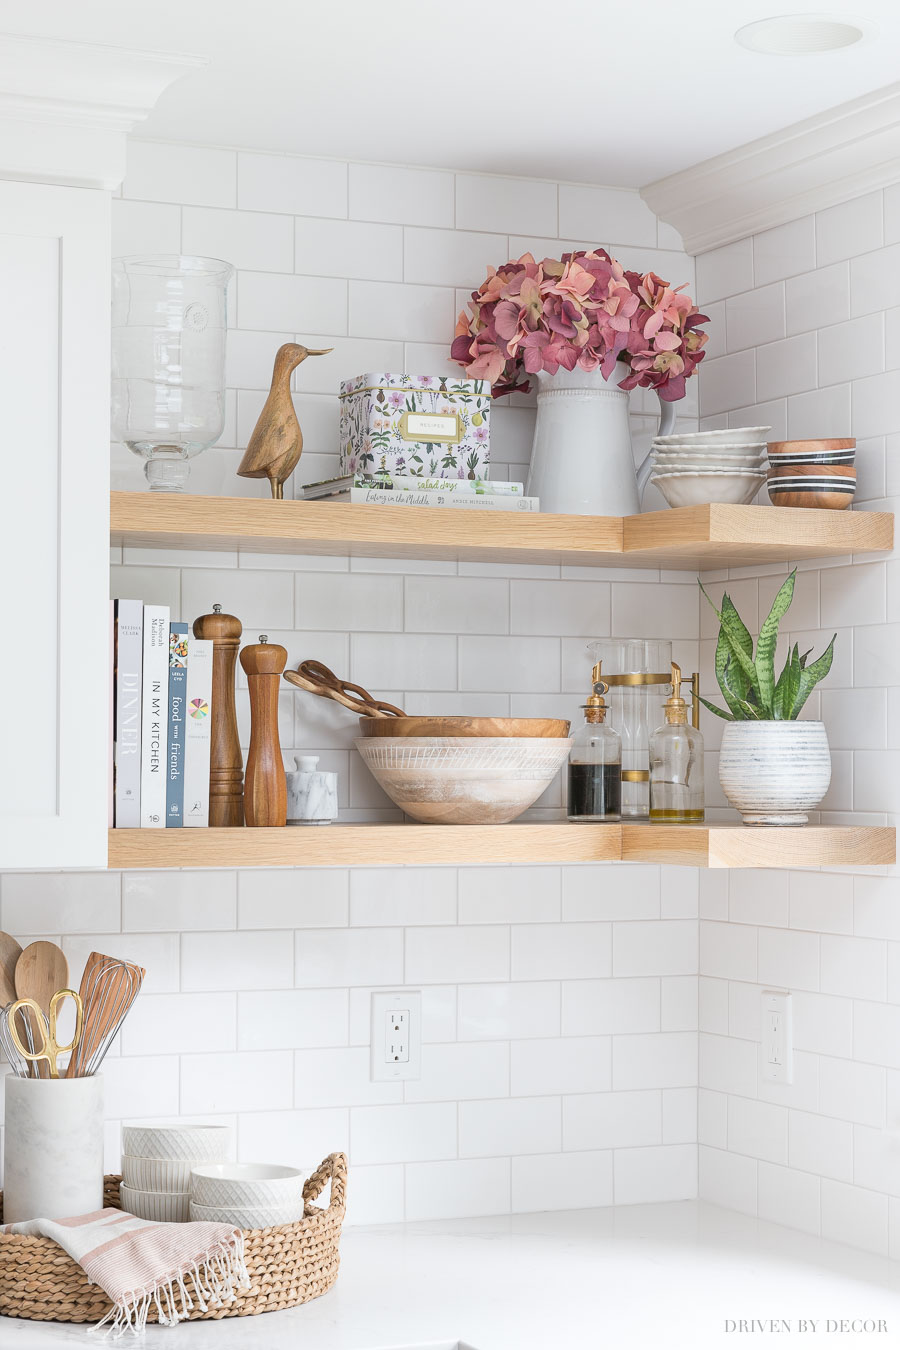 Faux hydrangeas that look real! Love them in a pitcher on this open kitchen shelving!